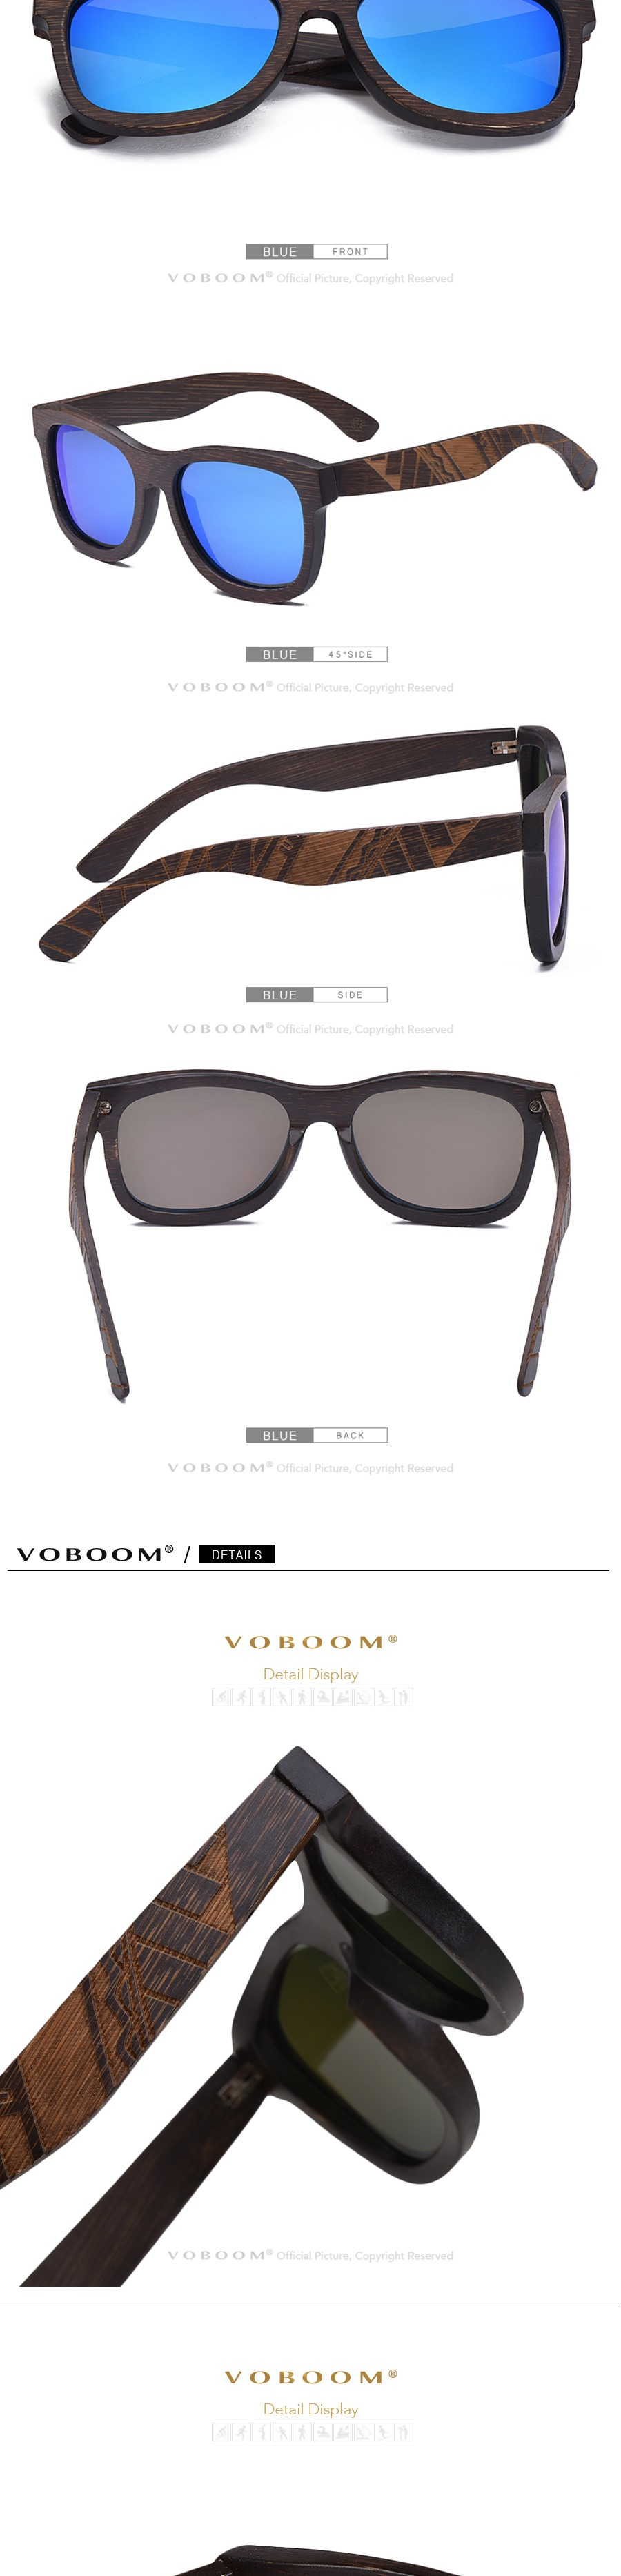 1197ff883e Detail Feedback Questions about VOBOOM Polarized UV400 Sunglasses ...